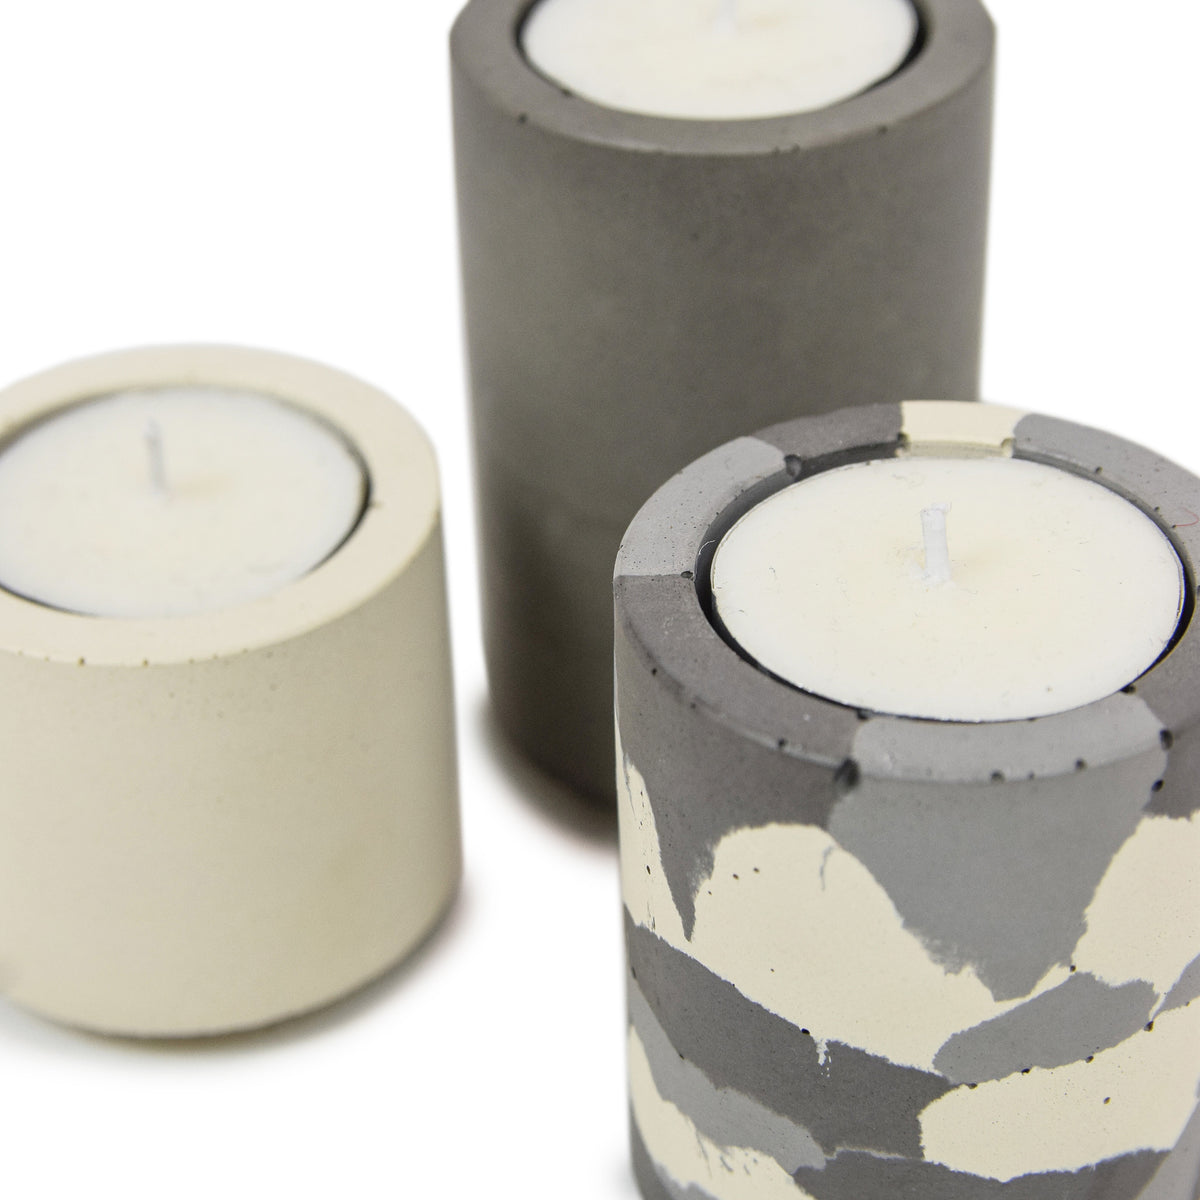 Concrete & Wax Beeswax Candle And Snow Camo Tealight Concrete Holders Slim DETAILS